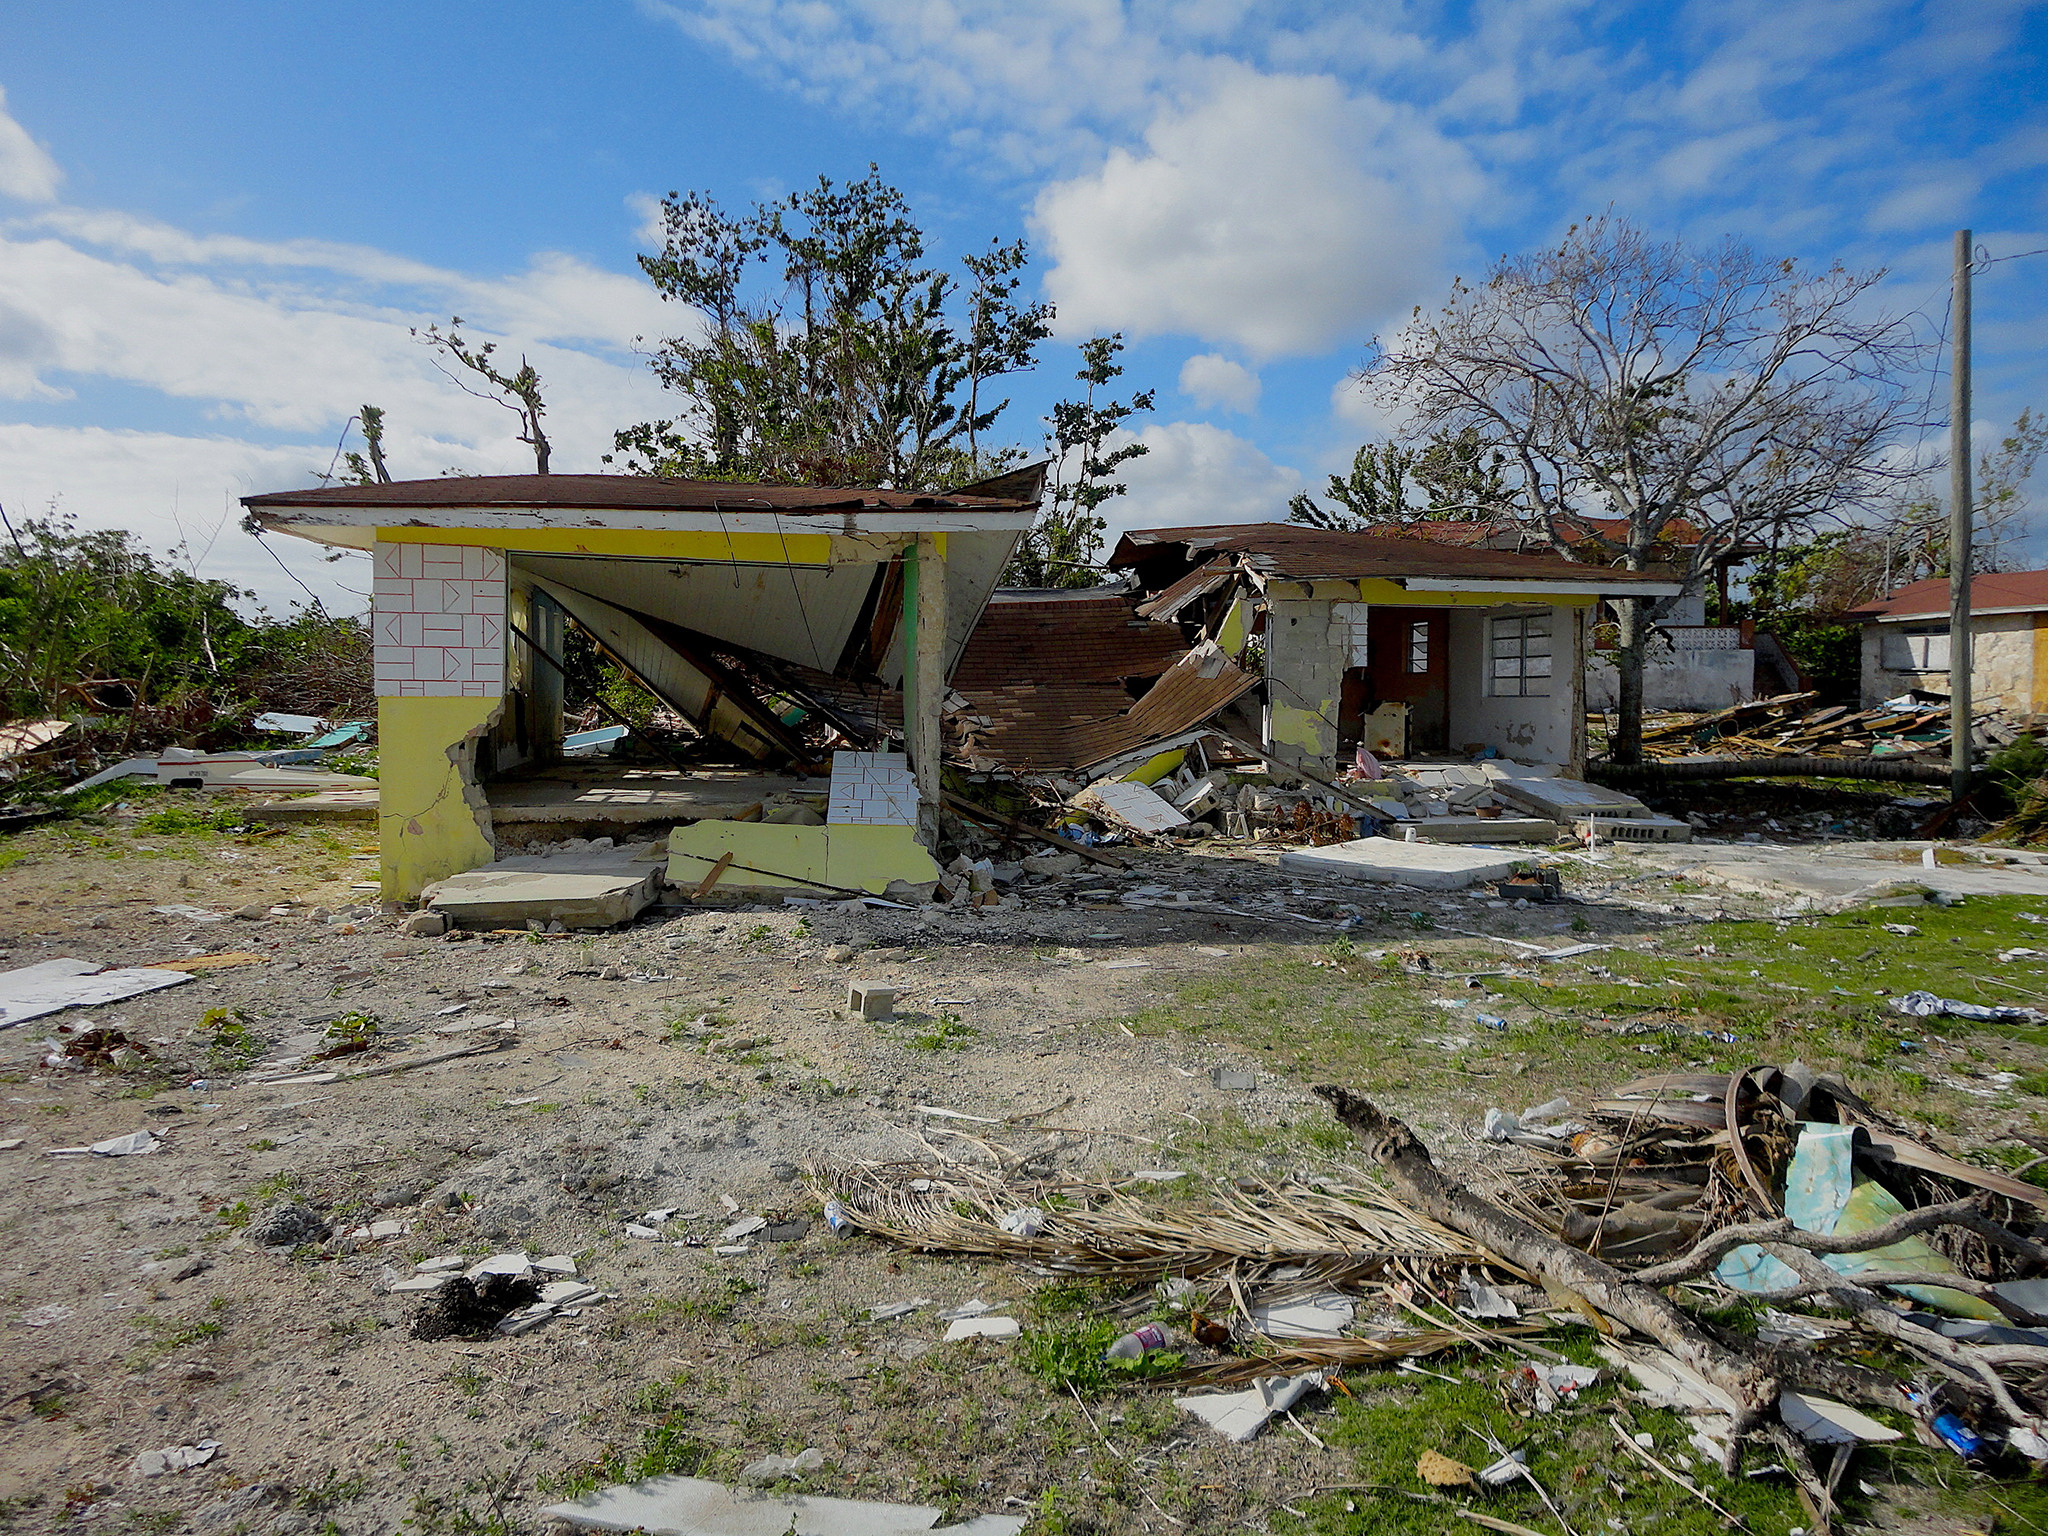 Hurricane Matthew spared few structures on Andros Island, and many, like these homes, were left uninhabitable in the storm's wake. Photograph by David Brian Butvill